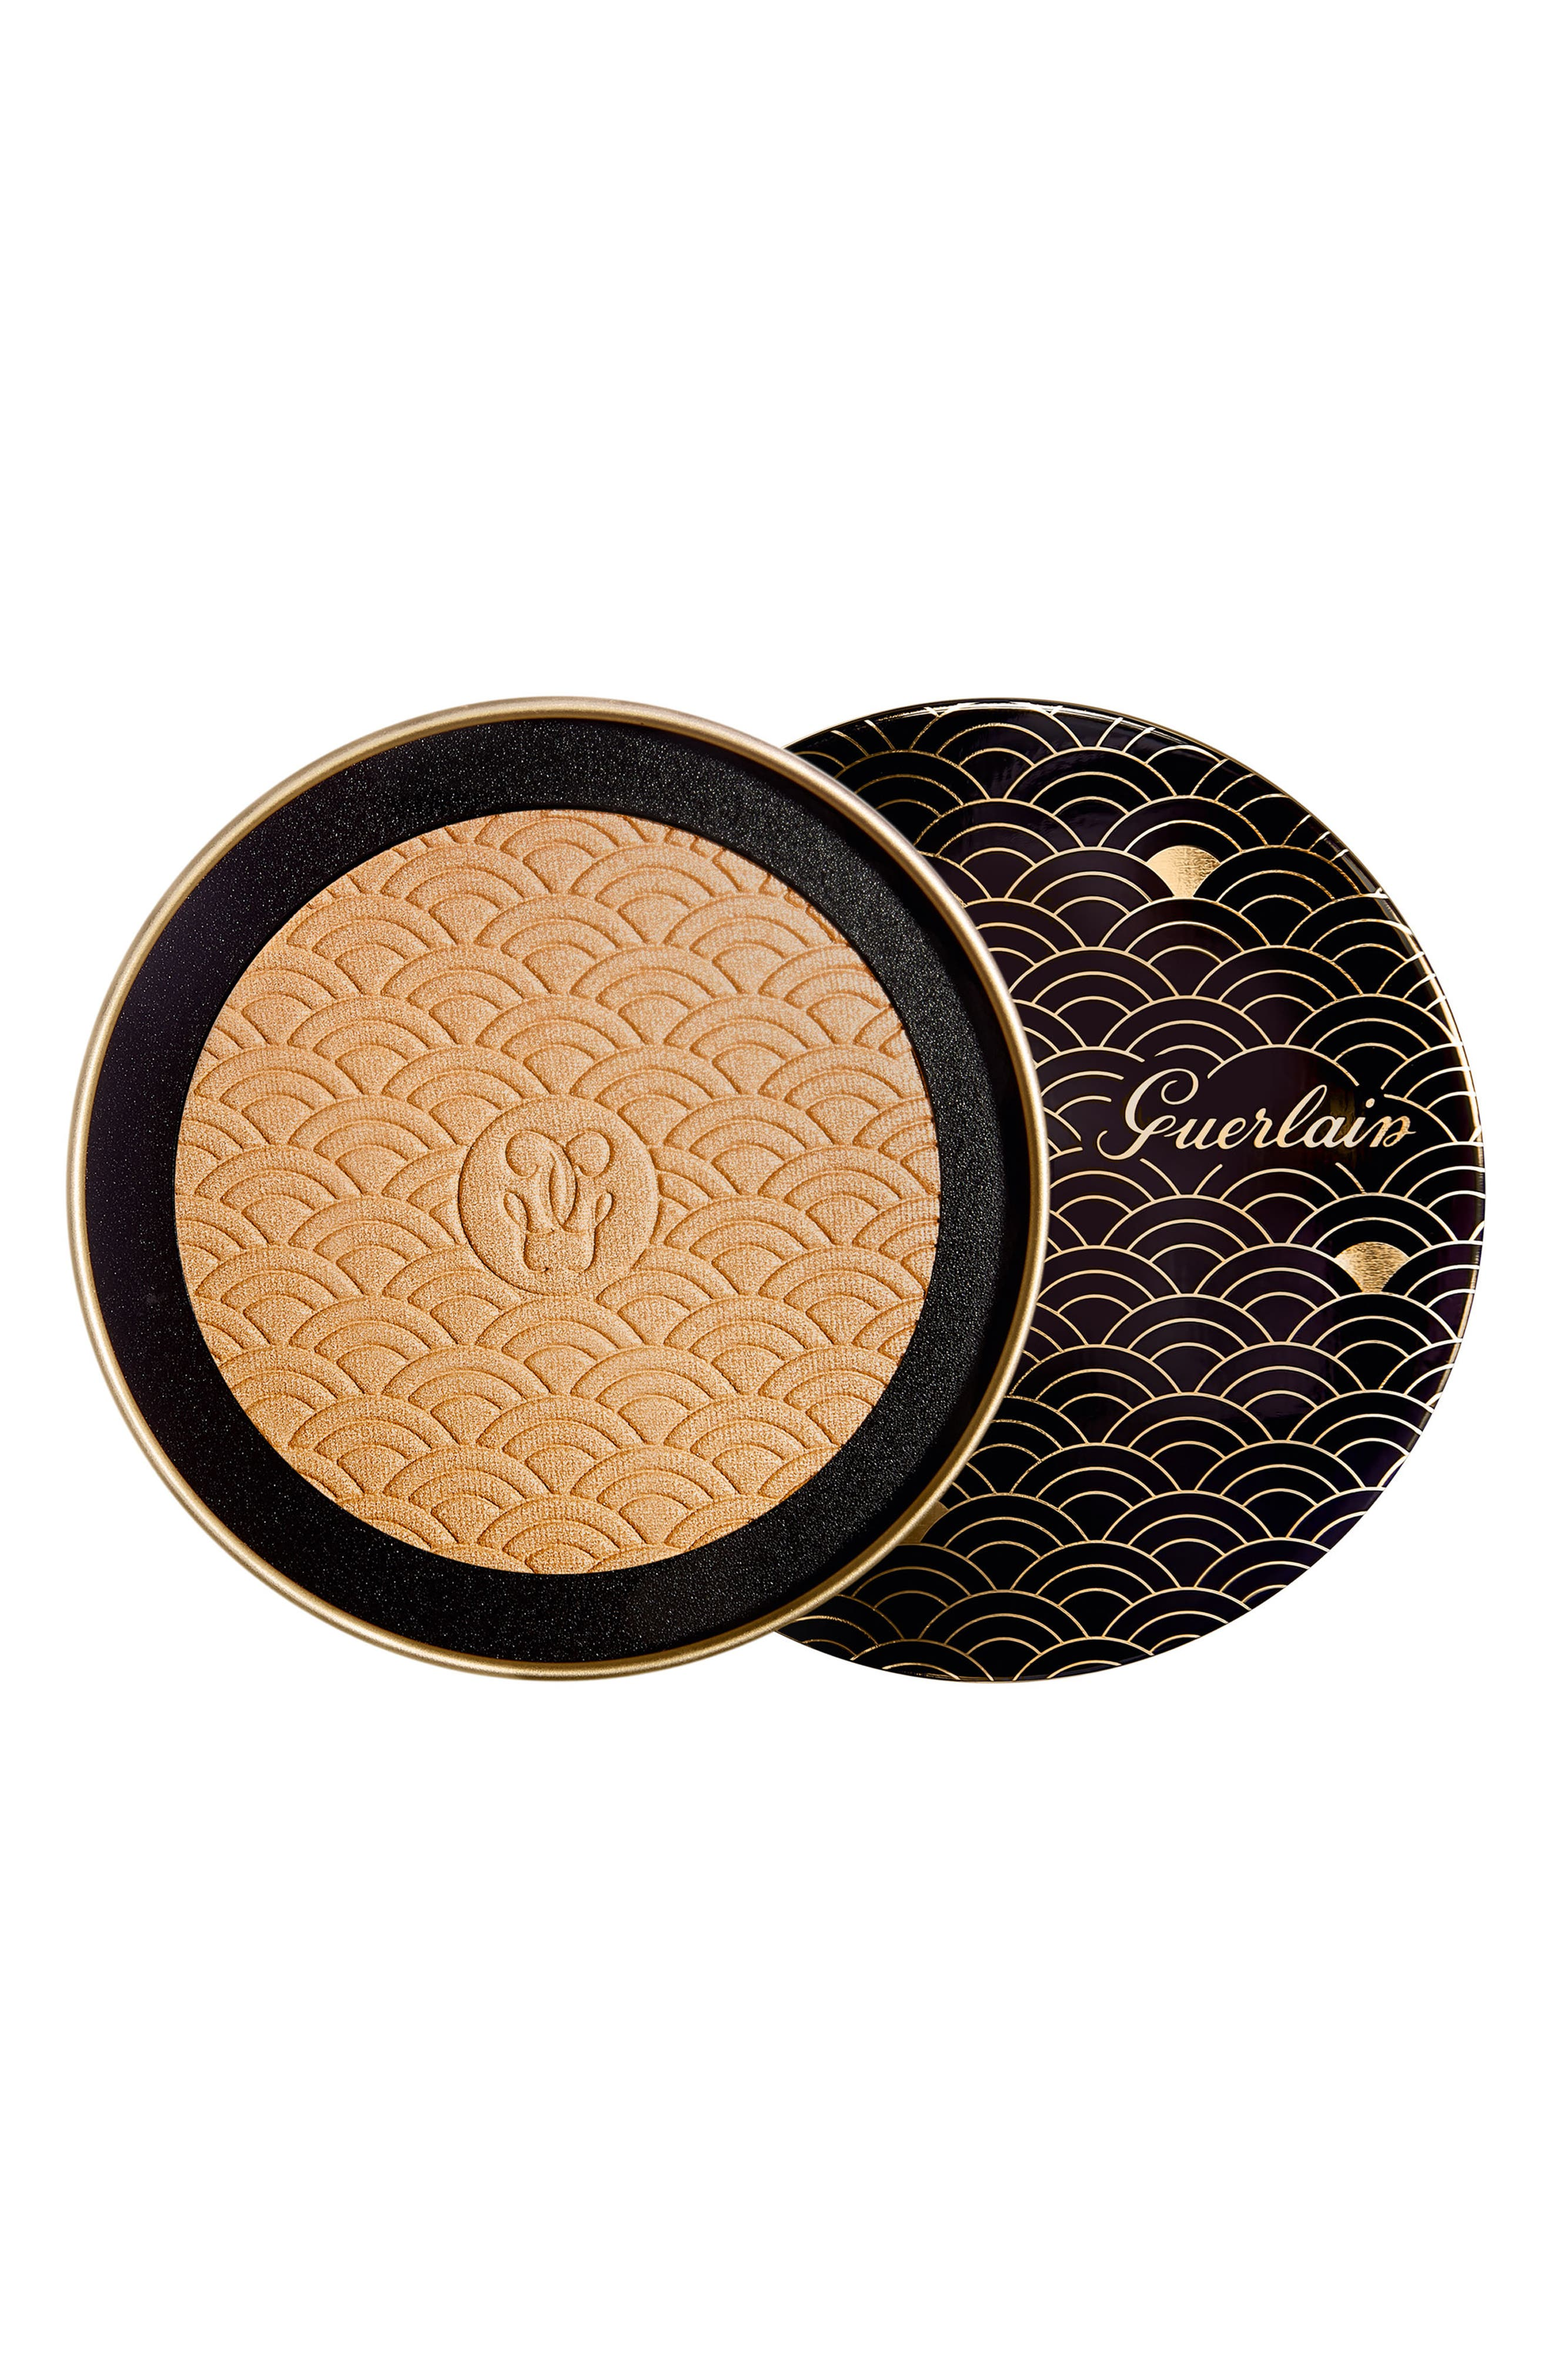 Main Image - Guerlain Terracotta Gold Light (Limited Edition)